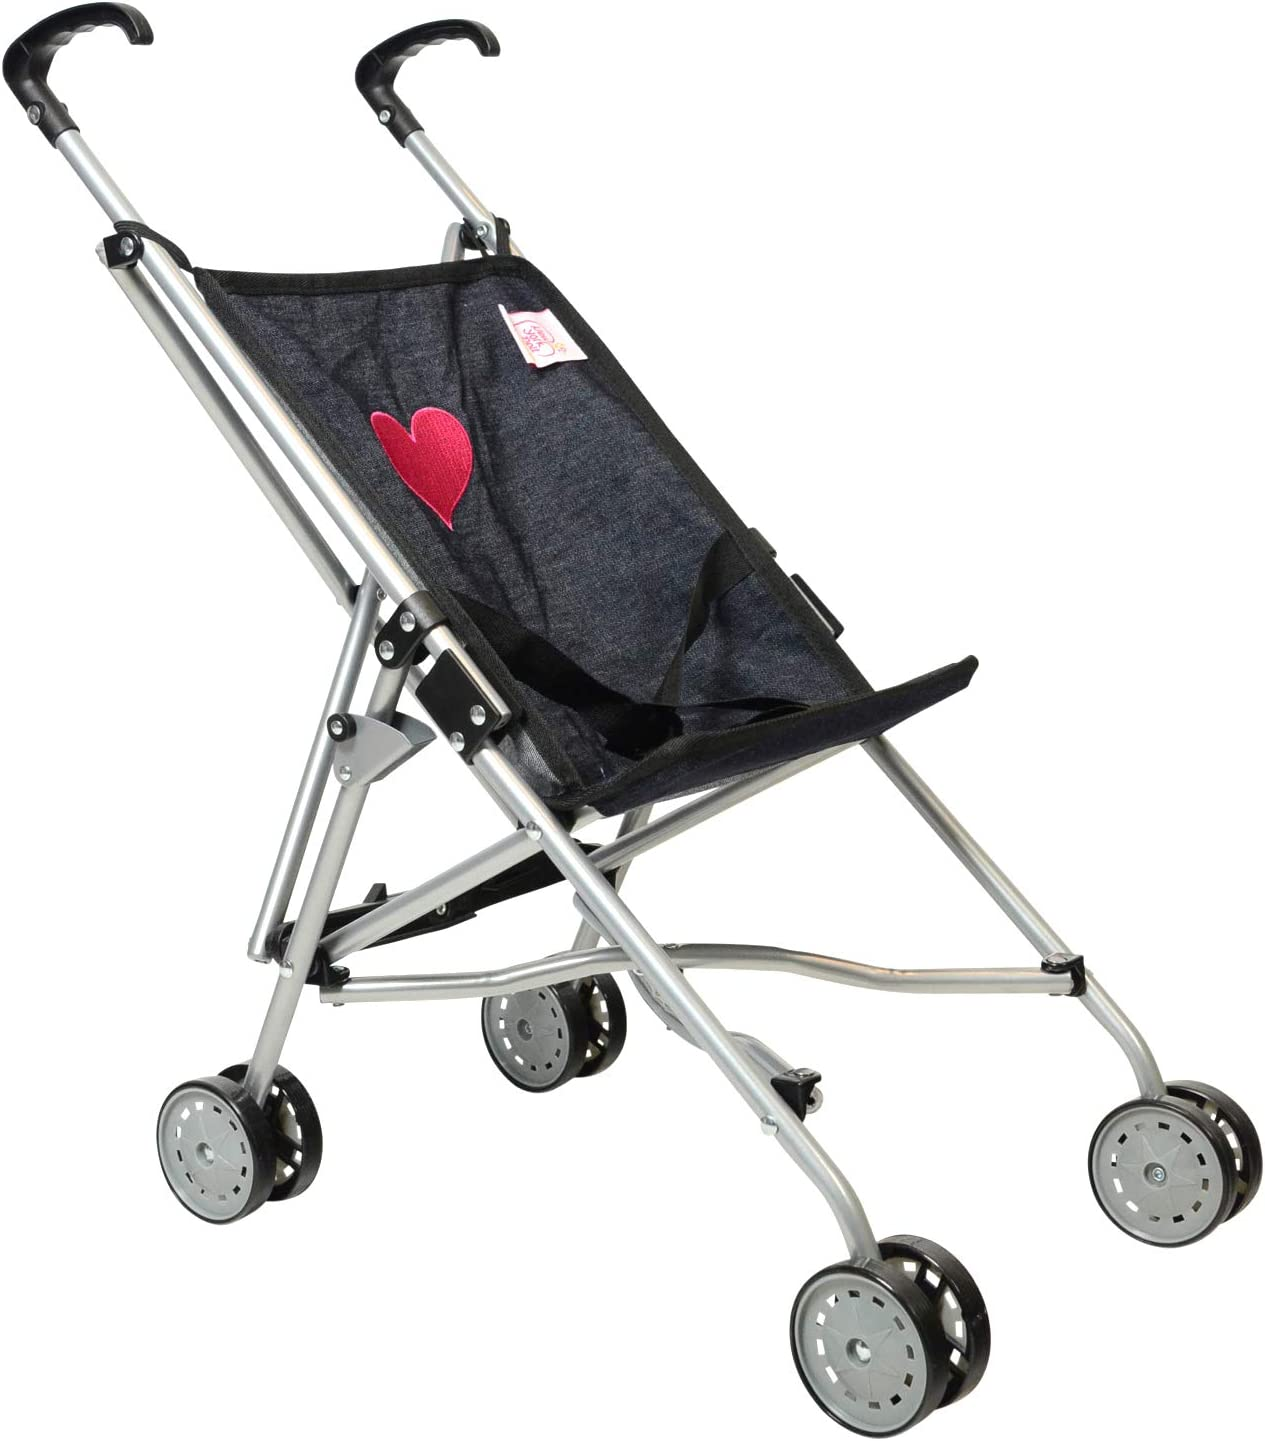 Top 10 Best Baby Doll Stroller (2020 Reviews & Buying Guide) 8